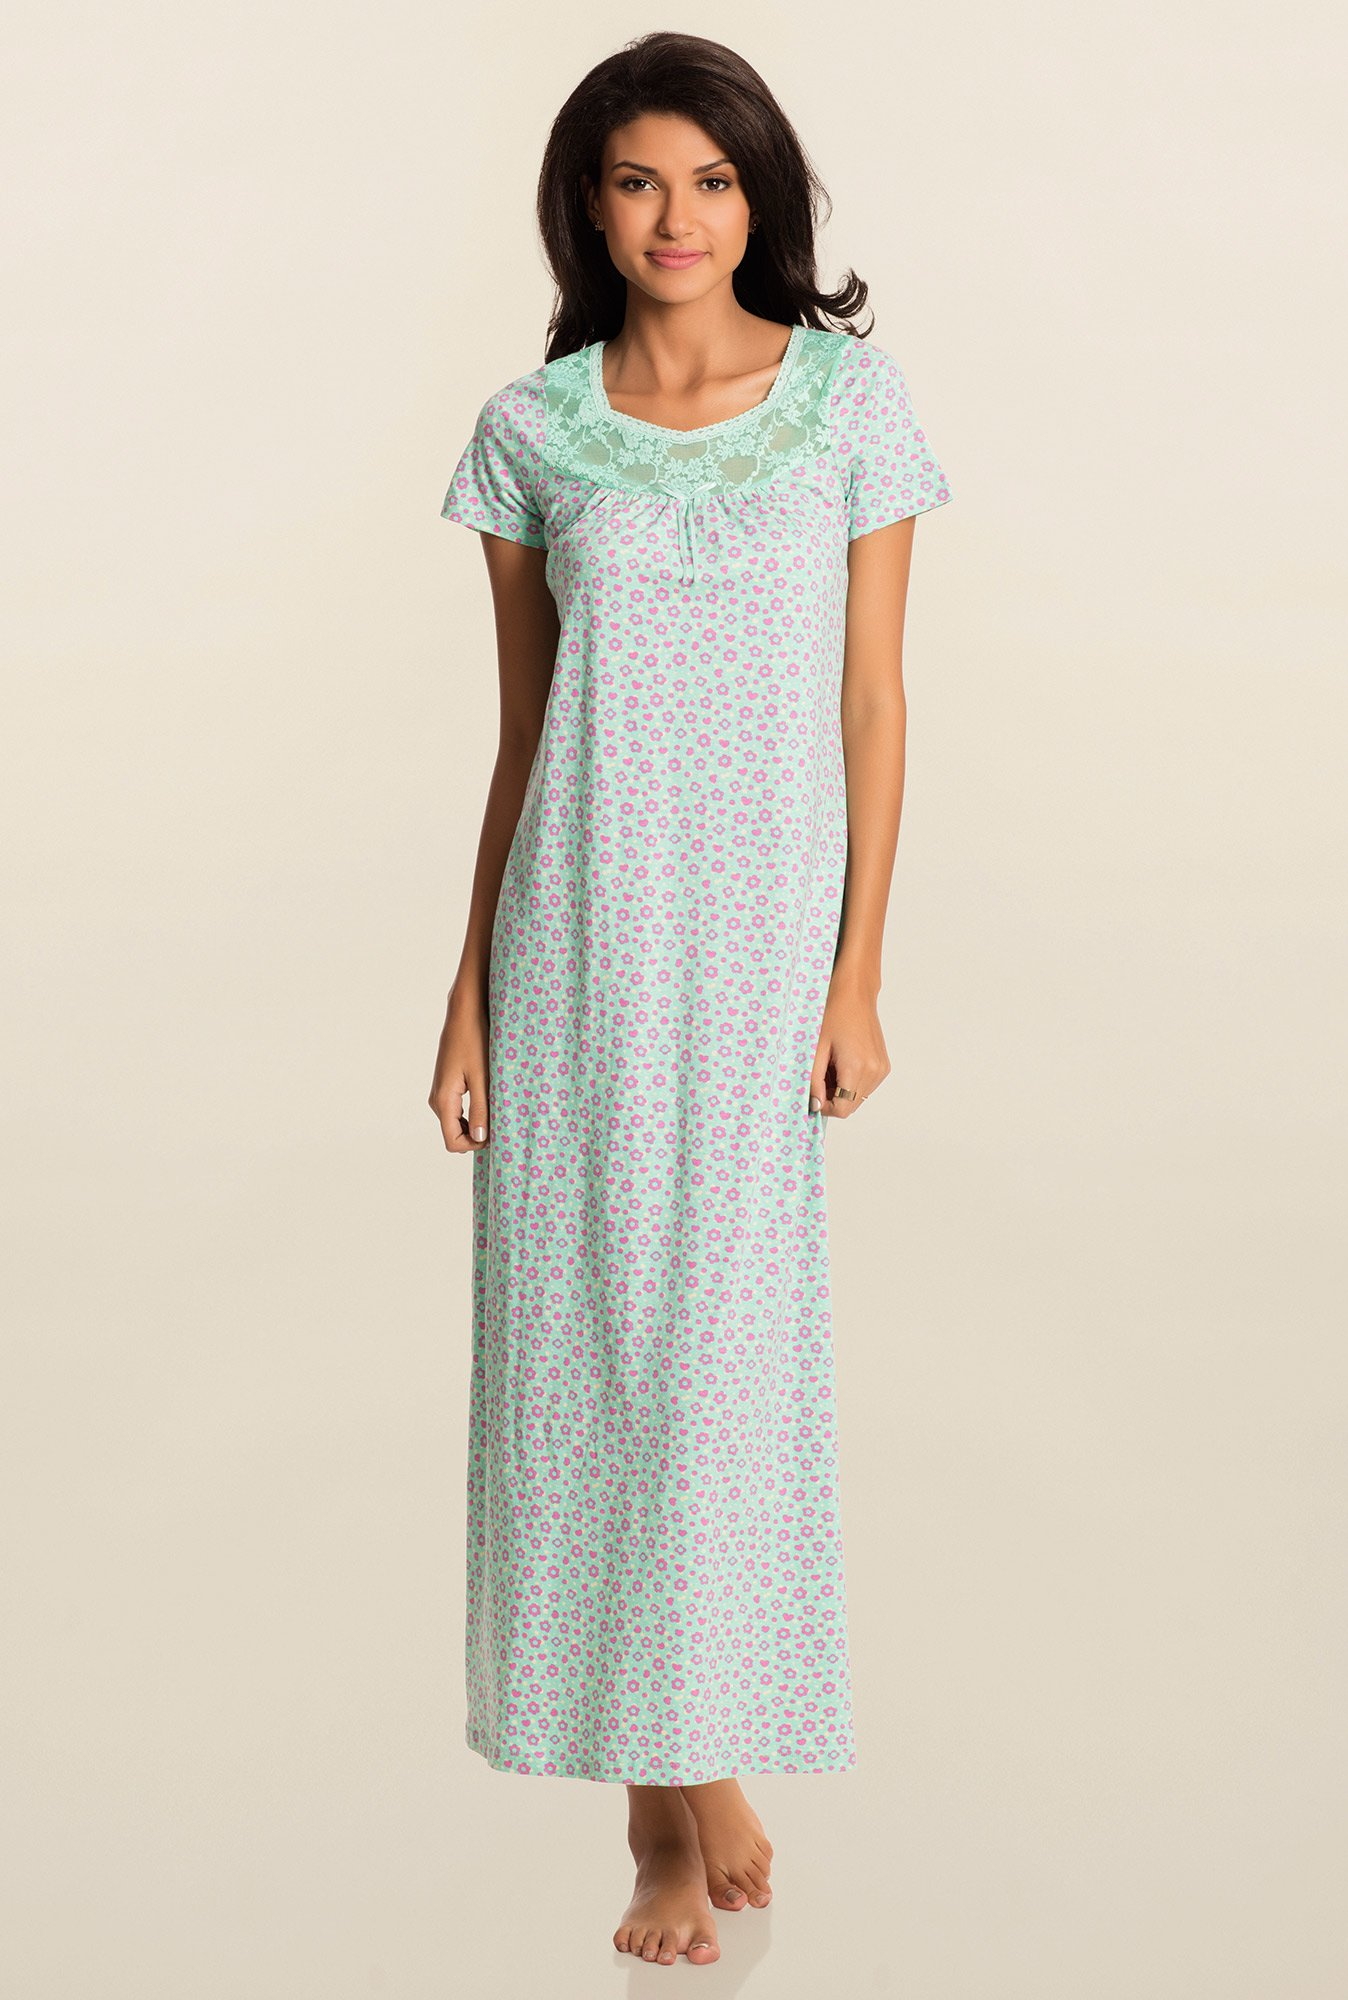 Pretty Secrets Mint Green Floral Night Dress